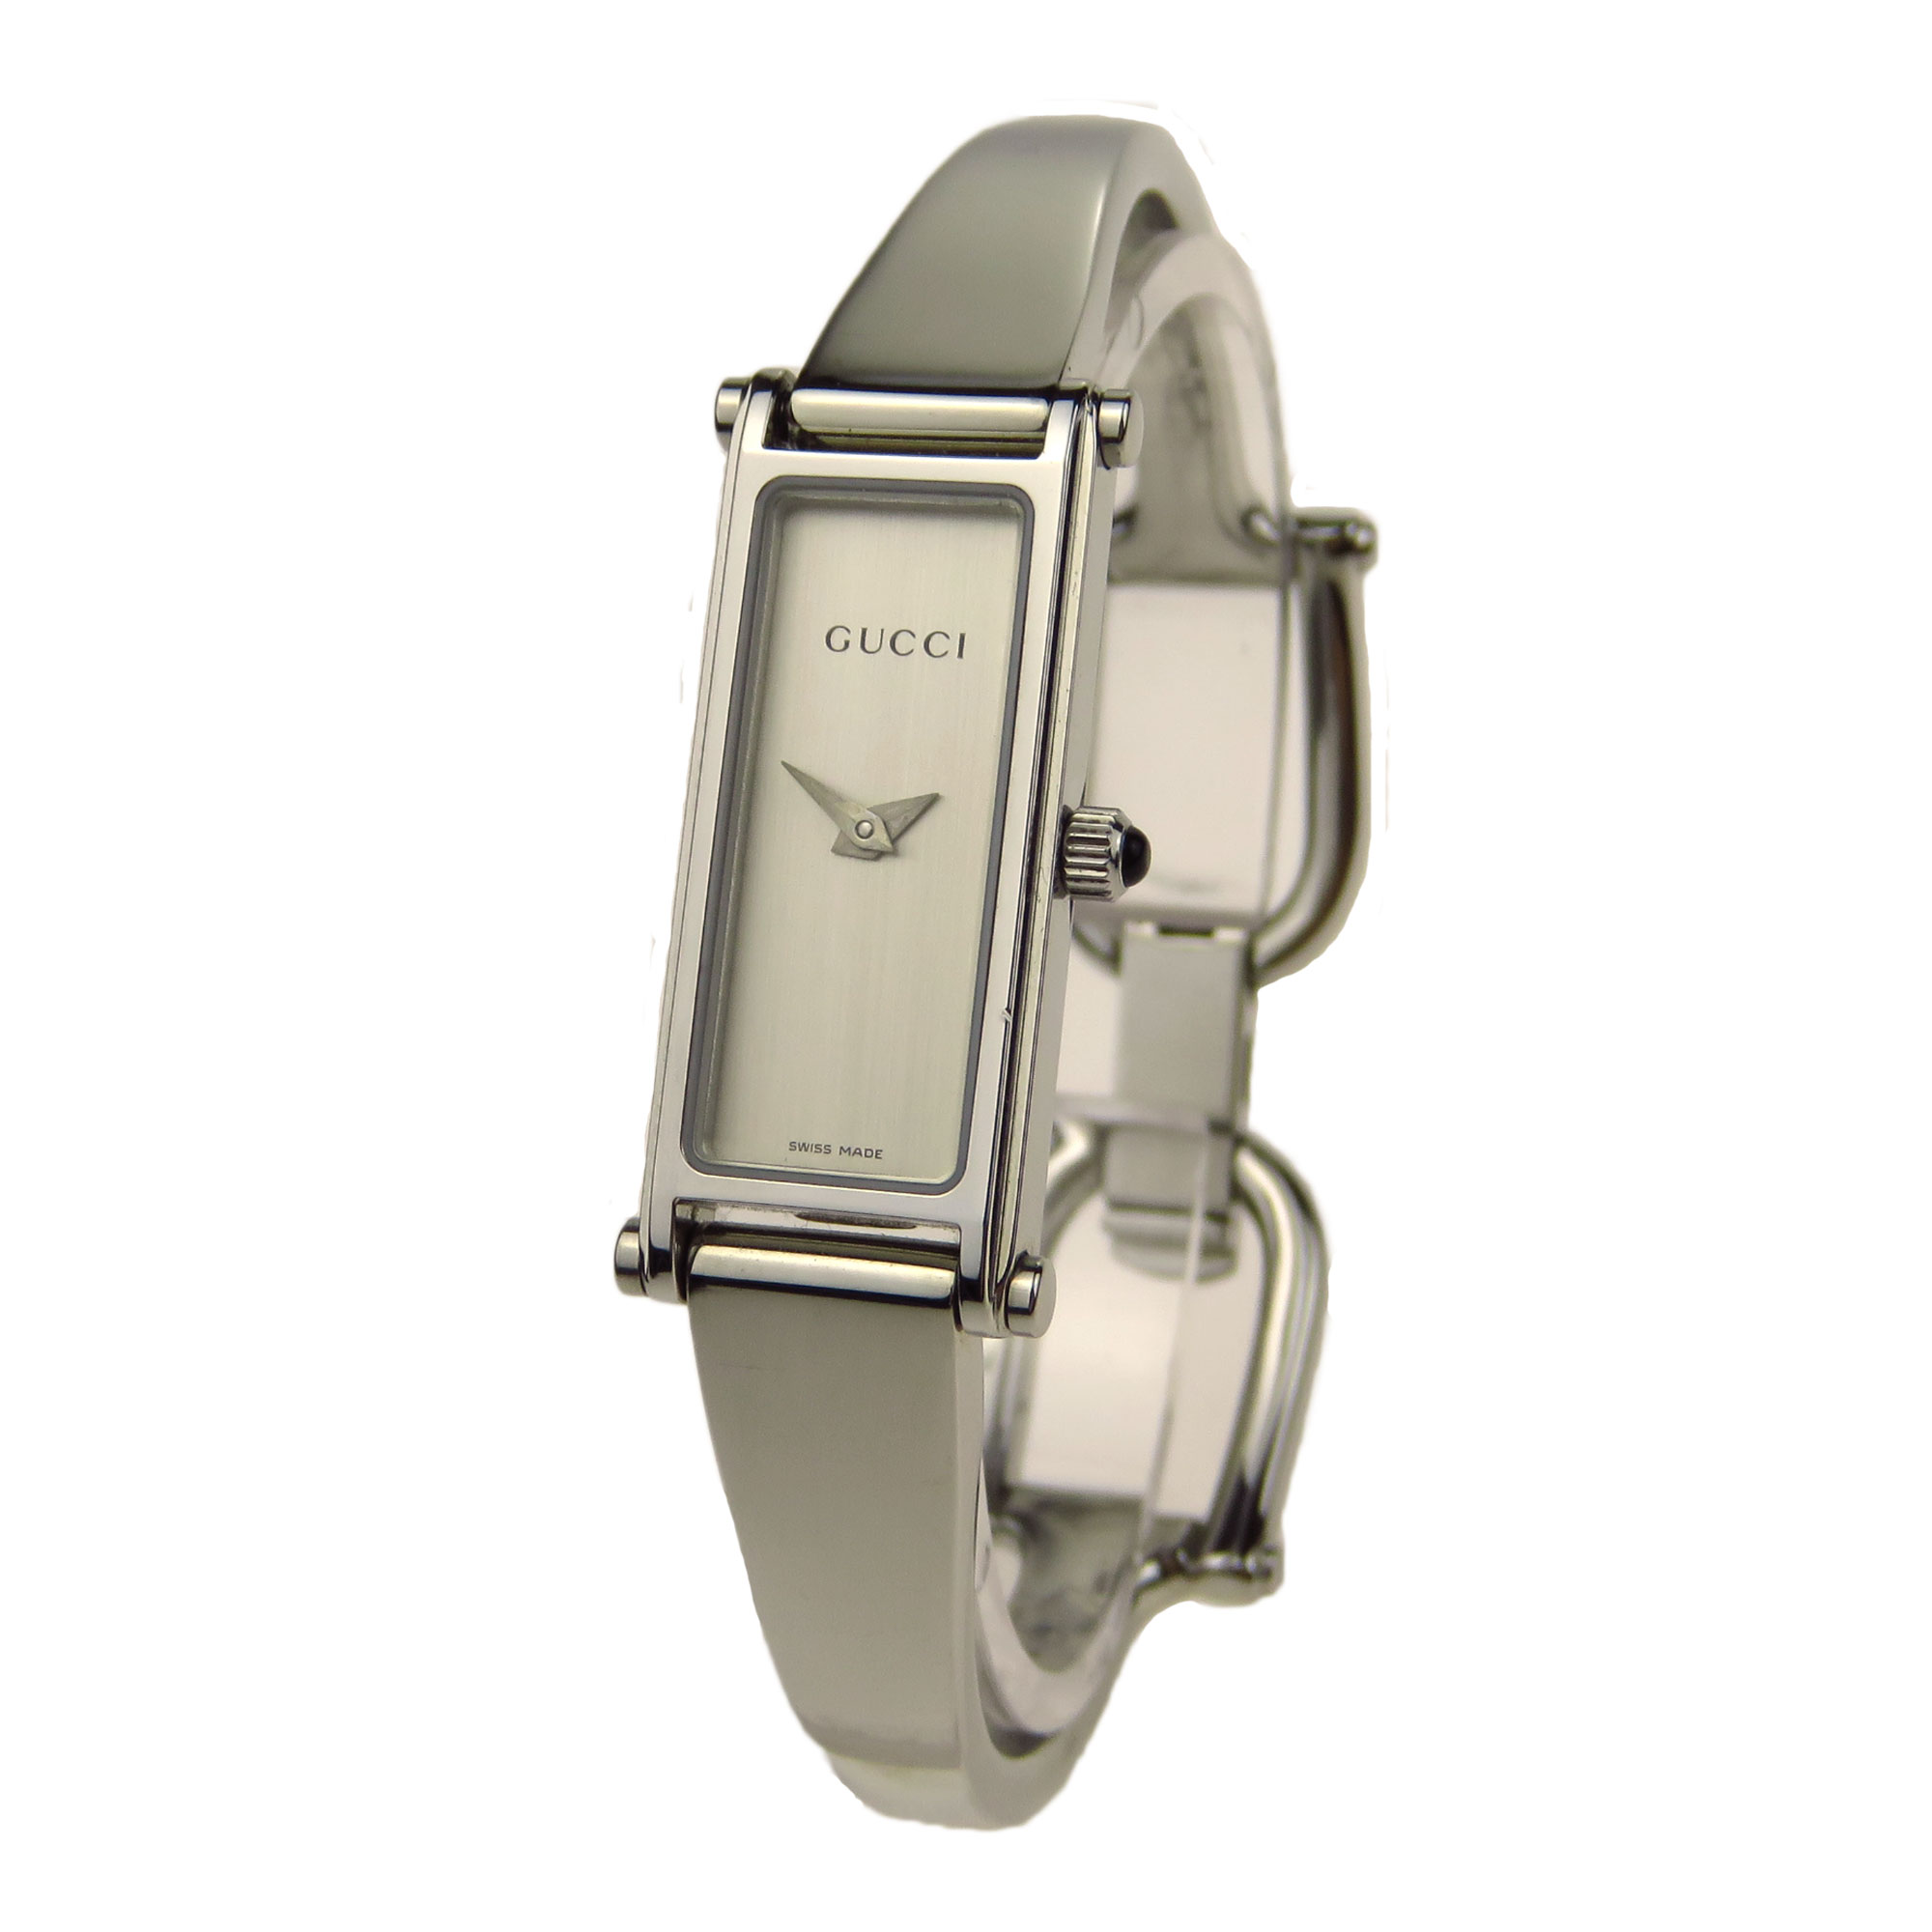 74b0016f7b027 Gucci Ladies 1500 Series Quartz YA015527 - Parkers Jewellers